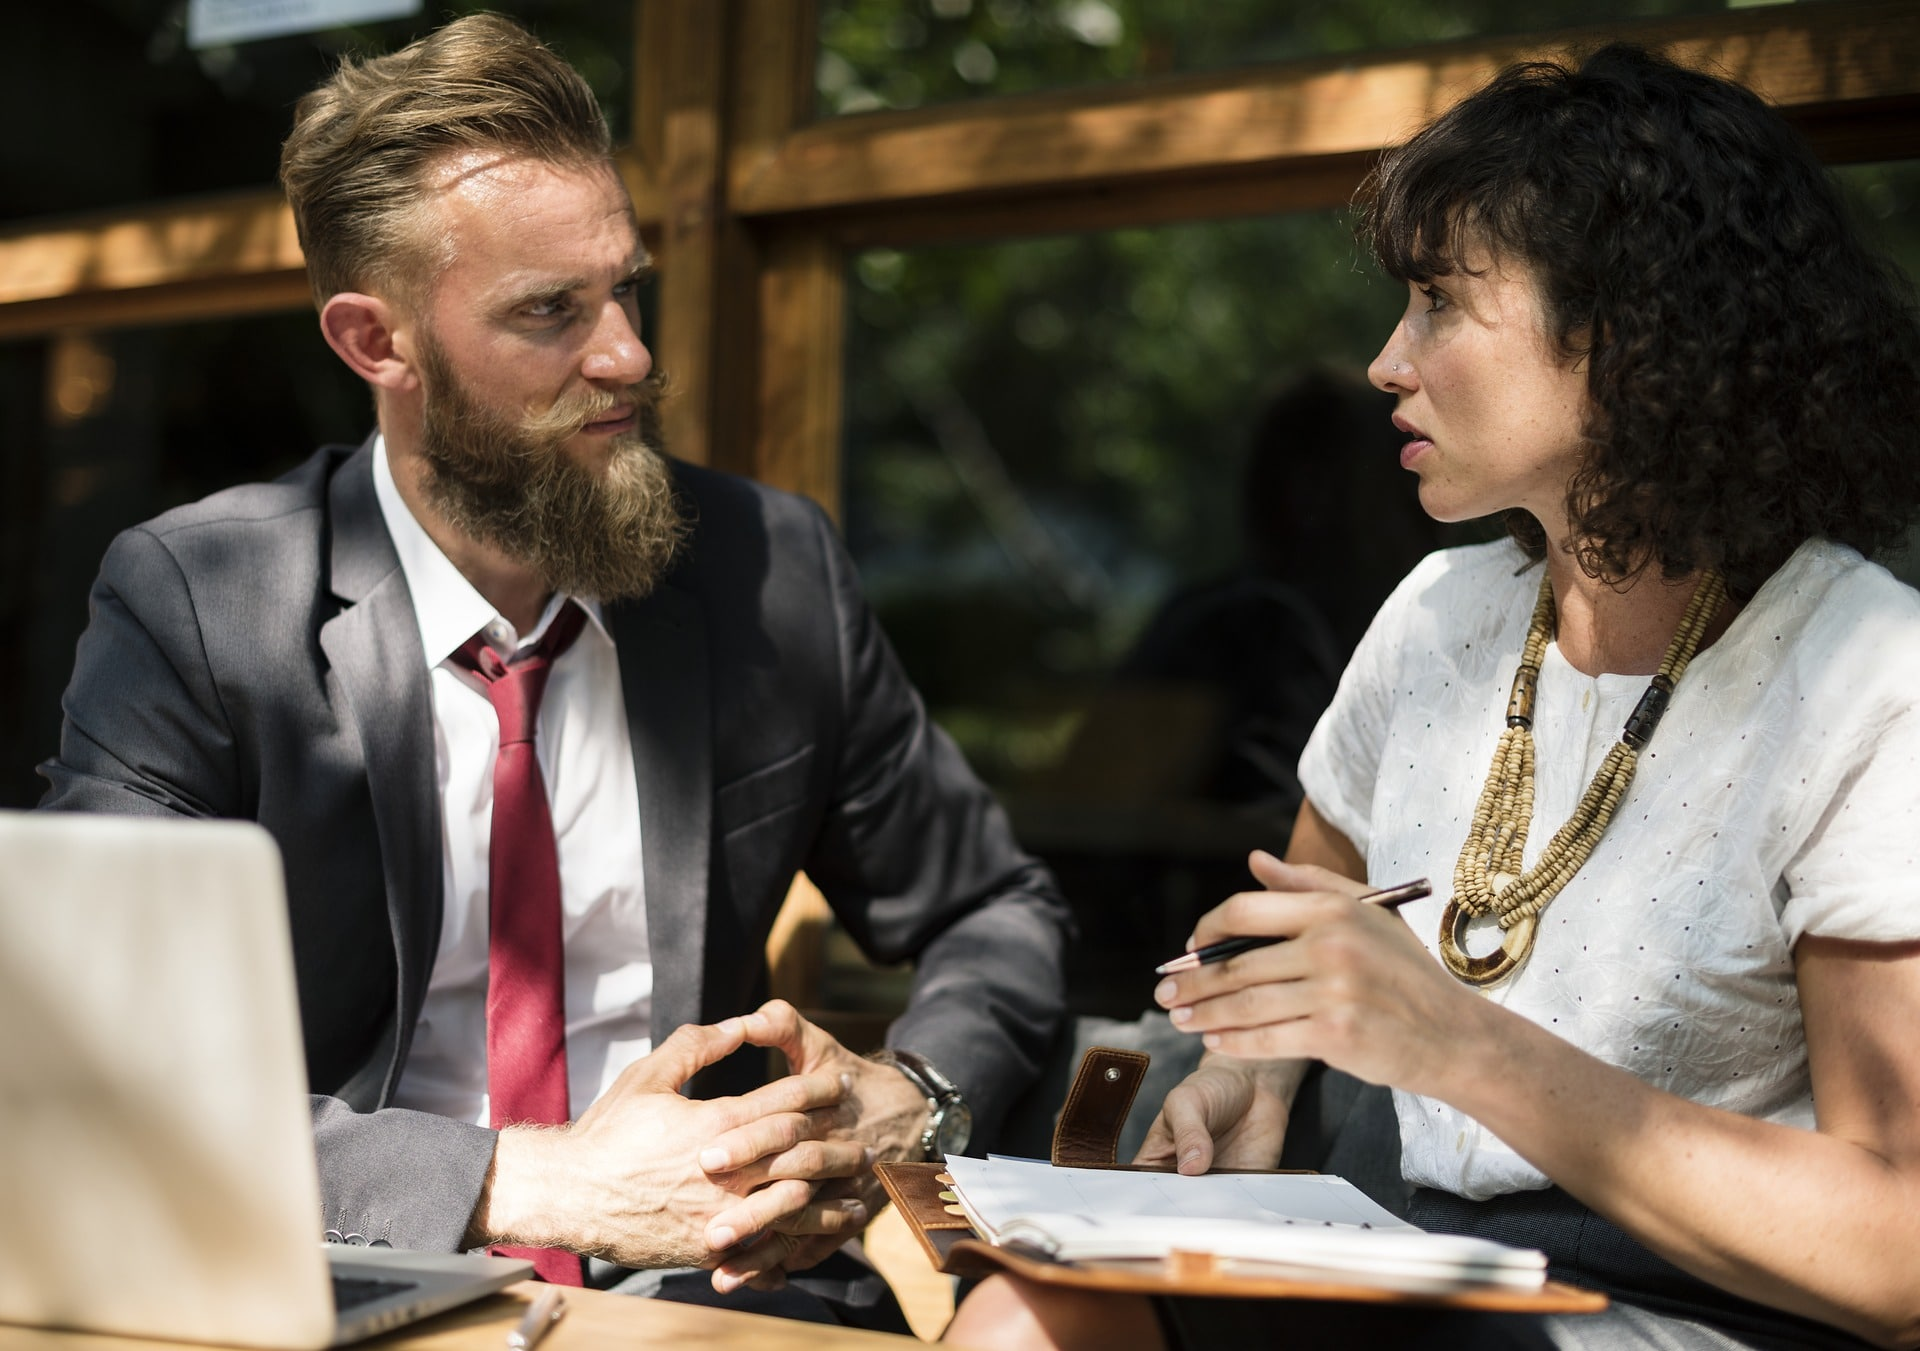 One On One Meeting Template - Free Download